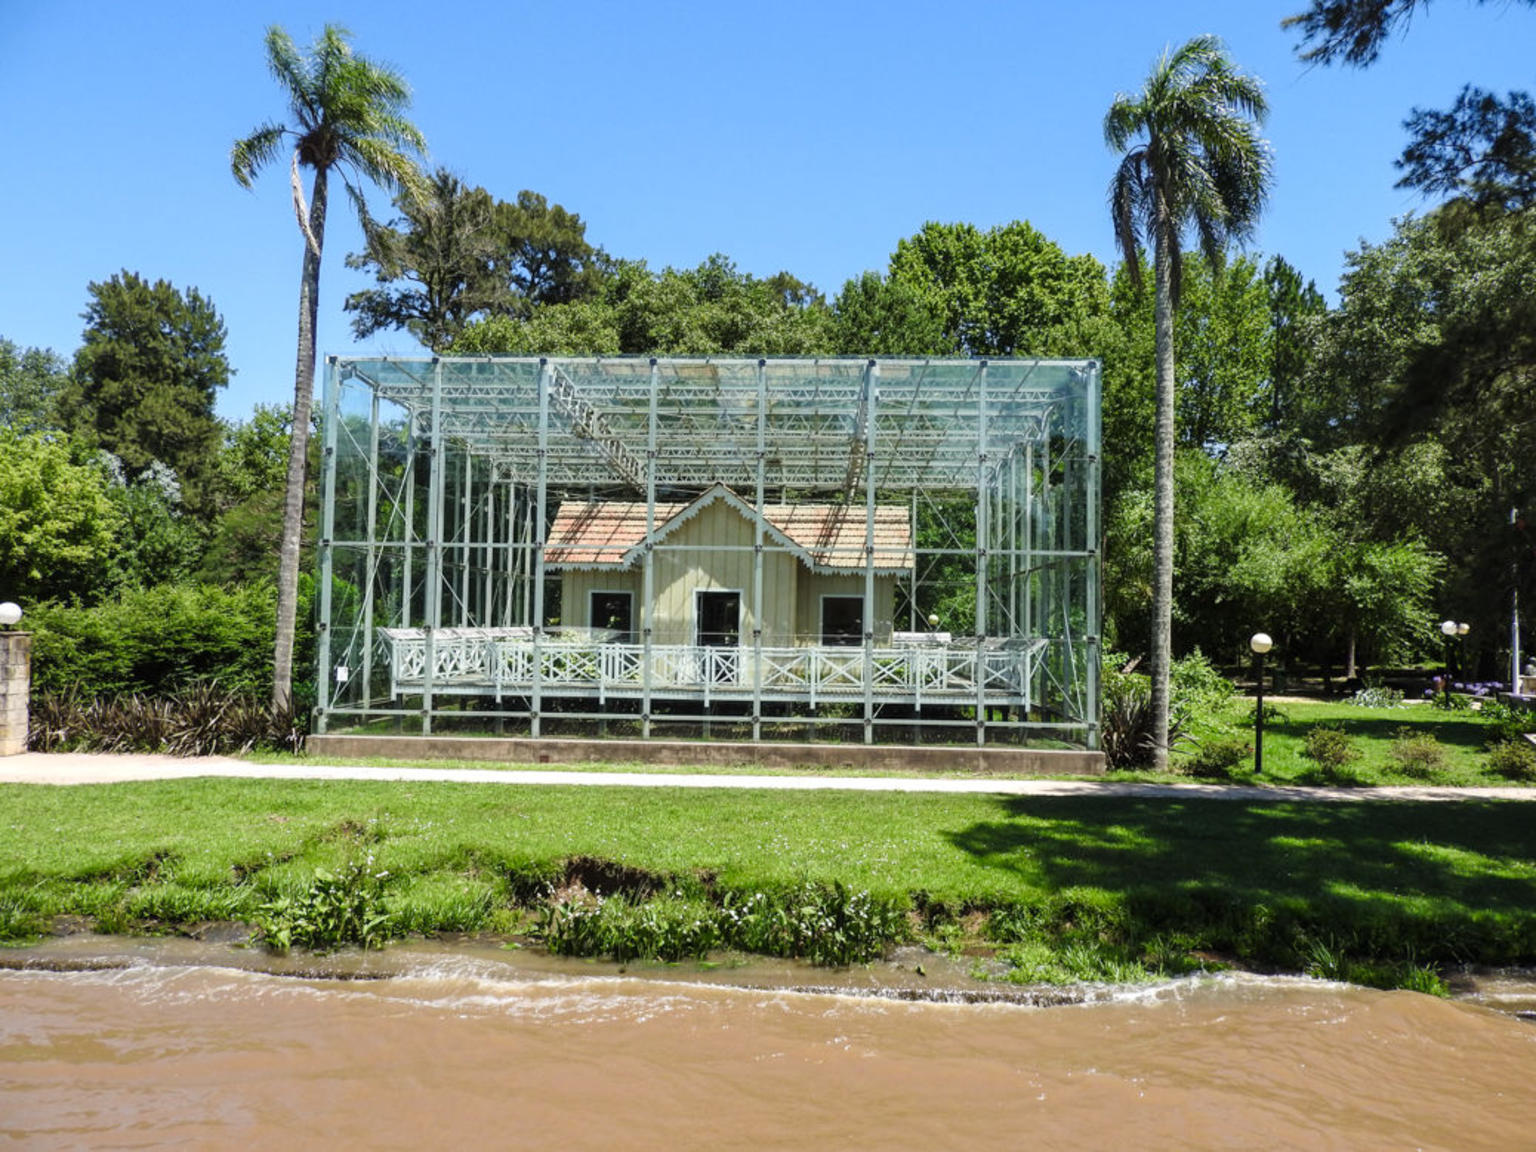 Small-Group San Isidro and Tigre Delta Tour